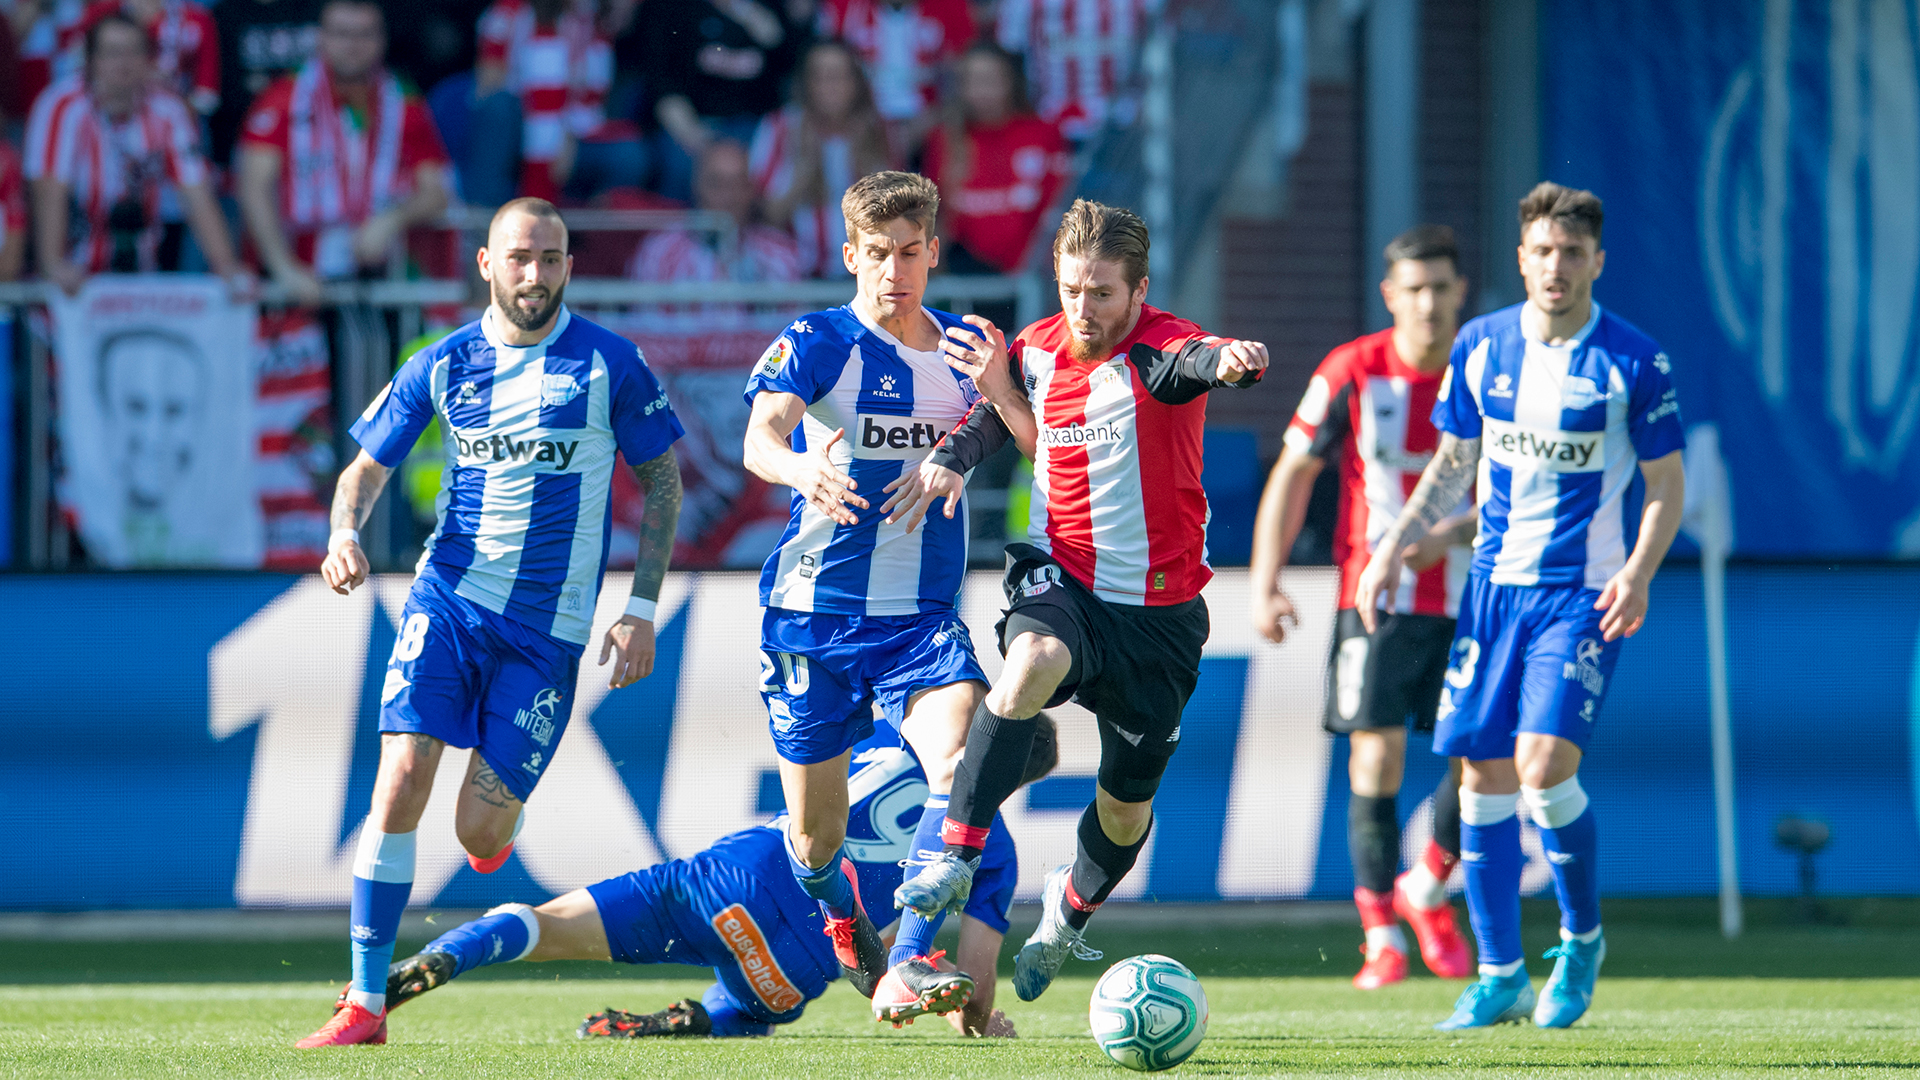 Alavés, first confirmed rival of the preseason